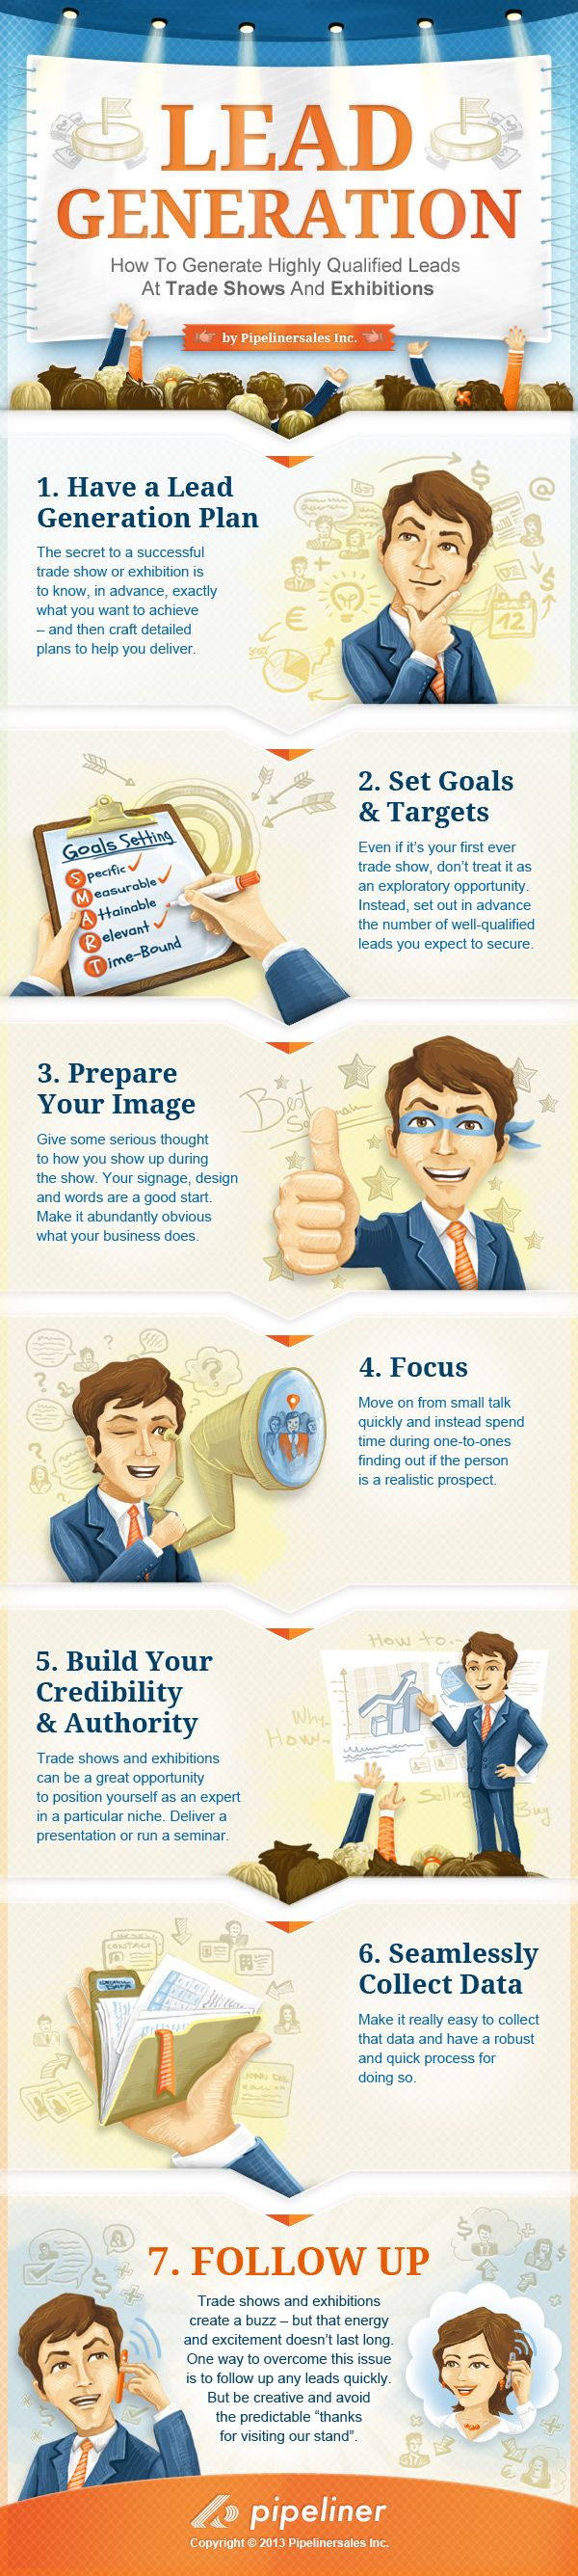 How To Generate Highly Qualified Leads At Trade Shows And Exhibitions #Infographic #Leads #TradeShows